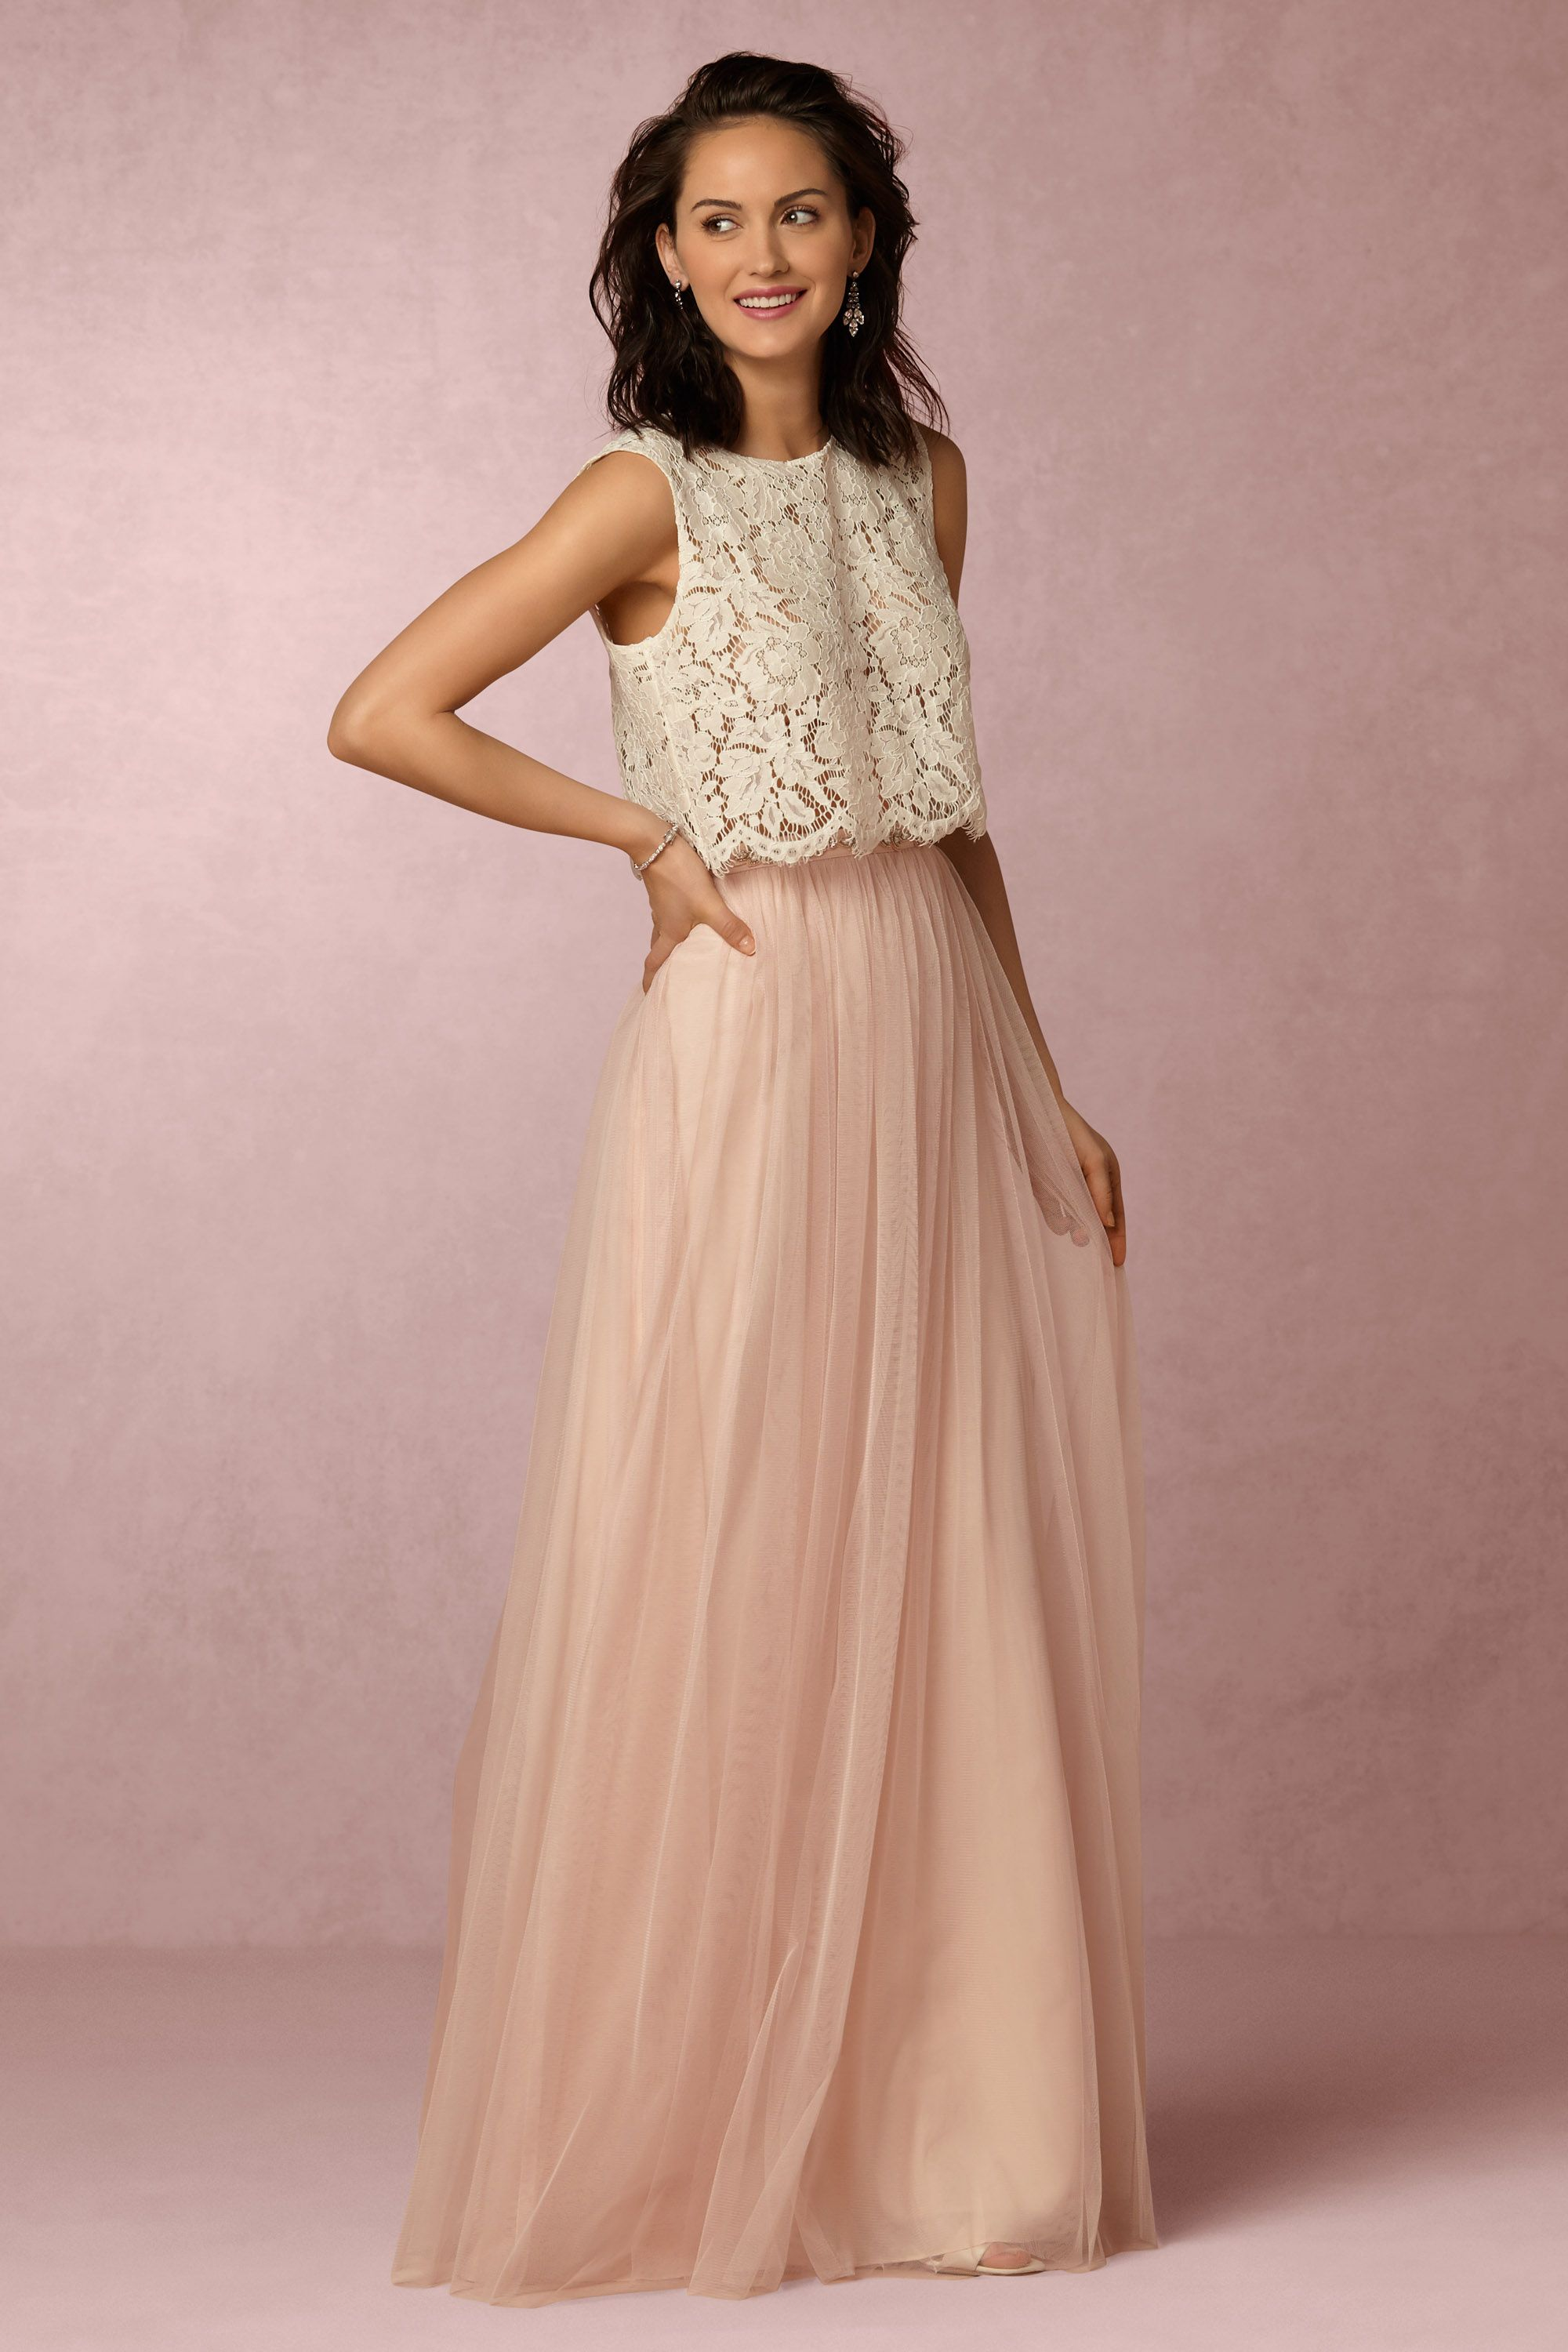 Country Bridesmaid Dresses Weddinginclude Wedding Ideas